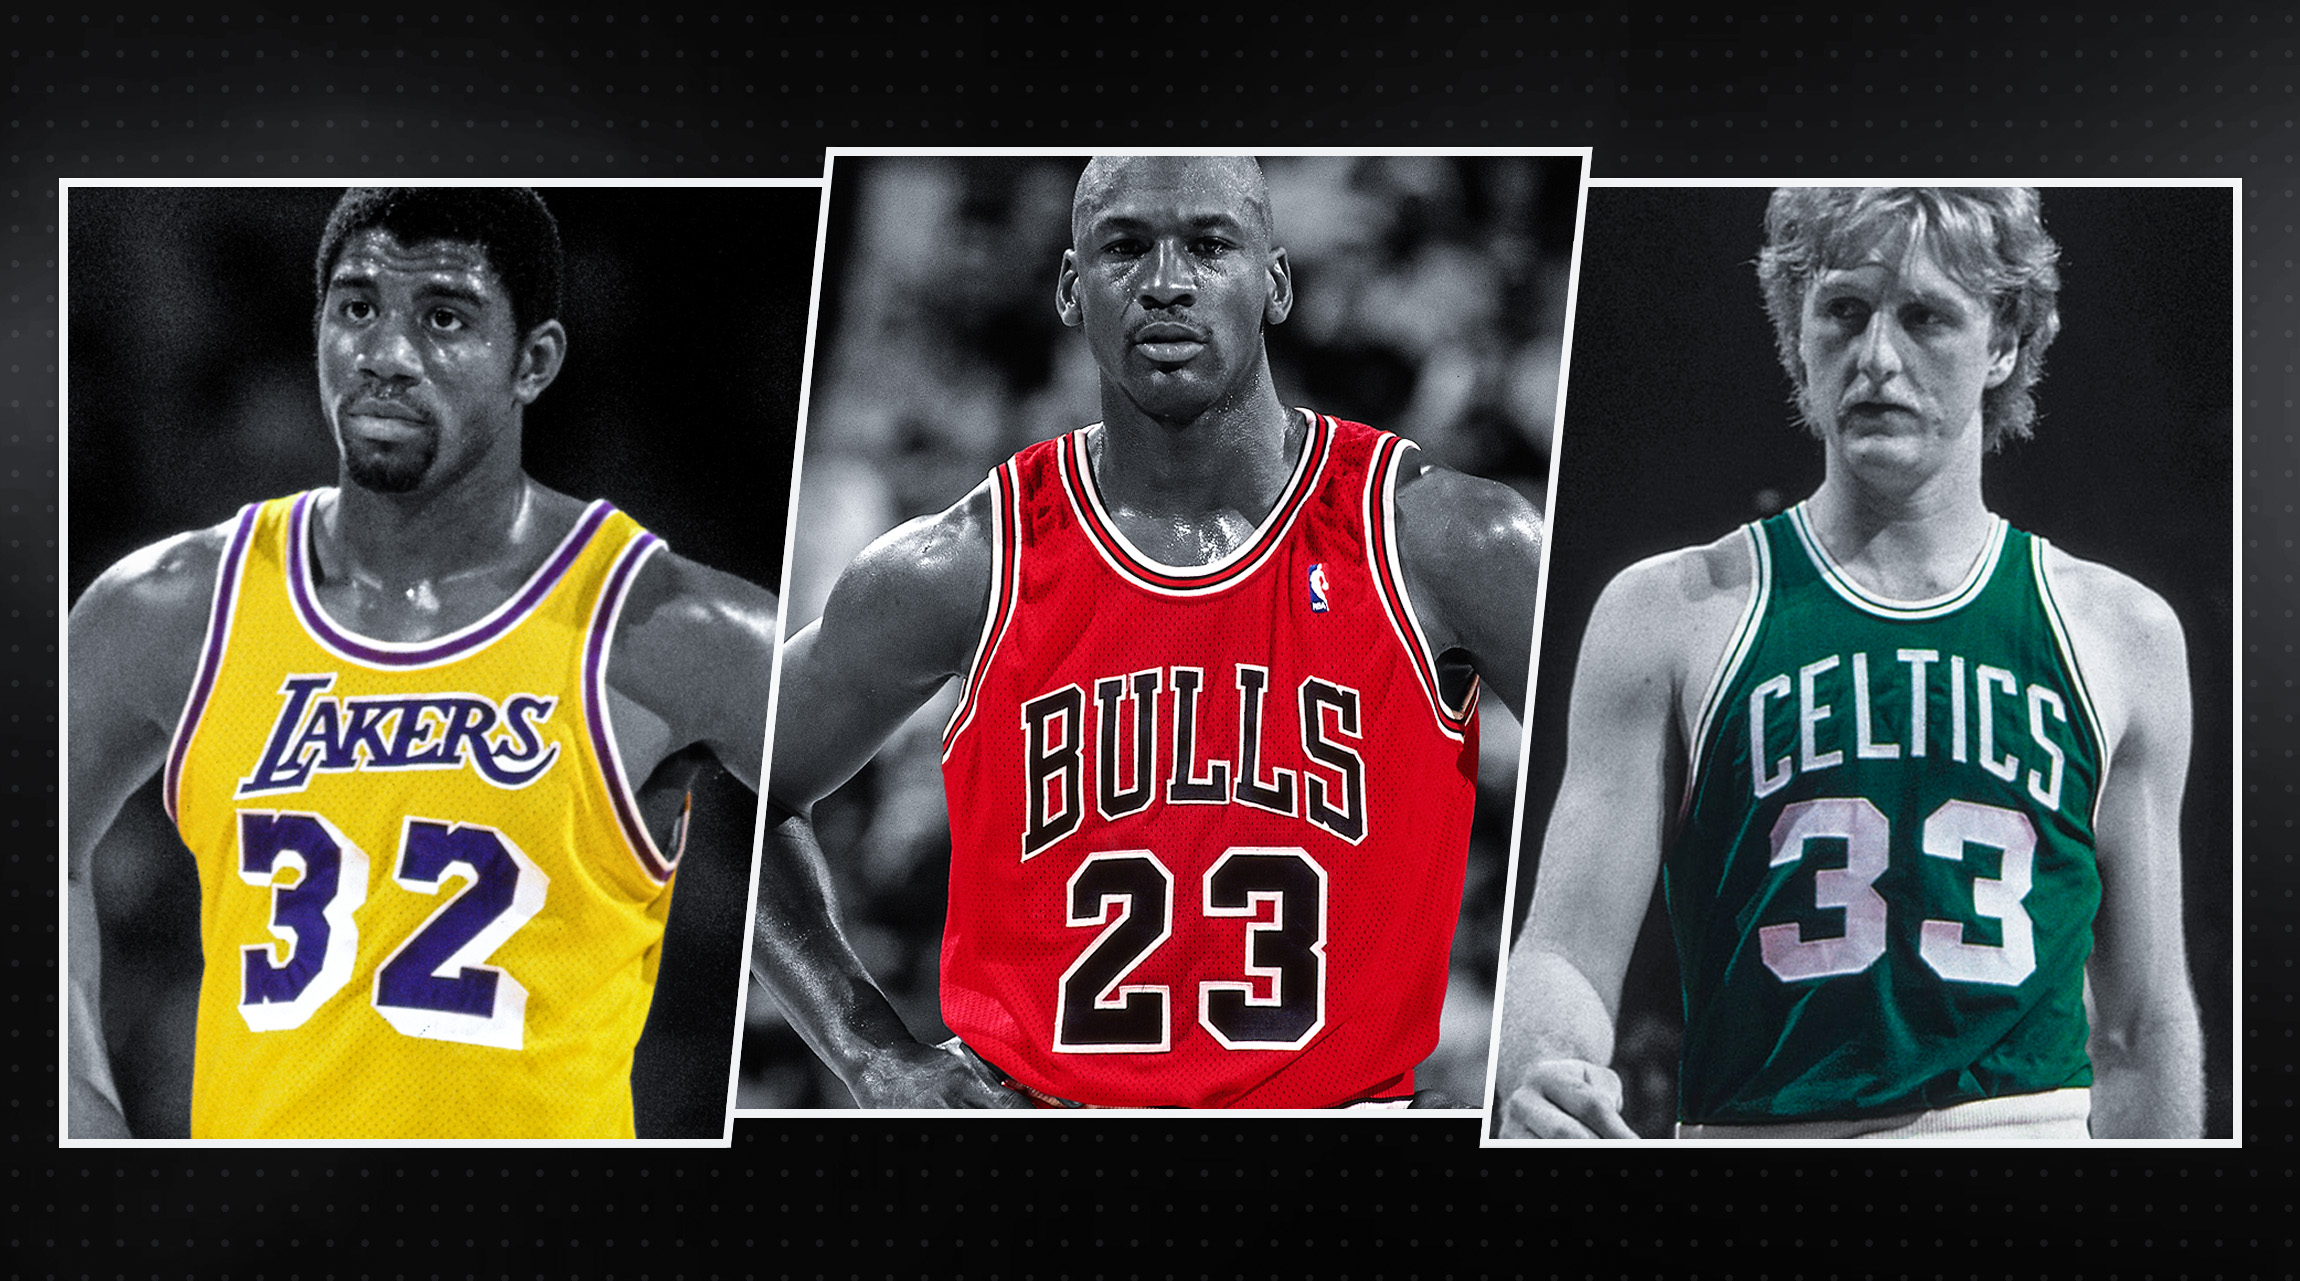 NBA jerseys  Ranking the 30 greatest in history  1a6f991d19d4